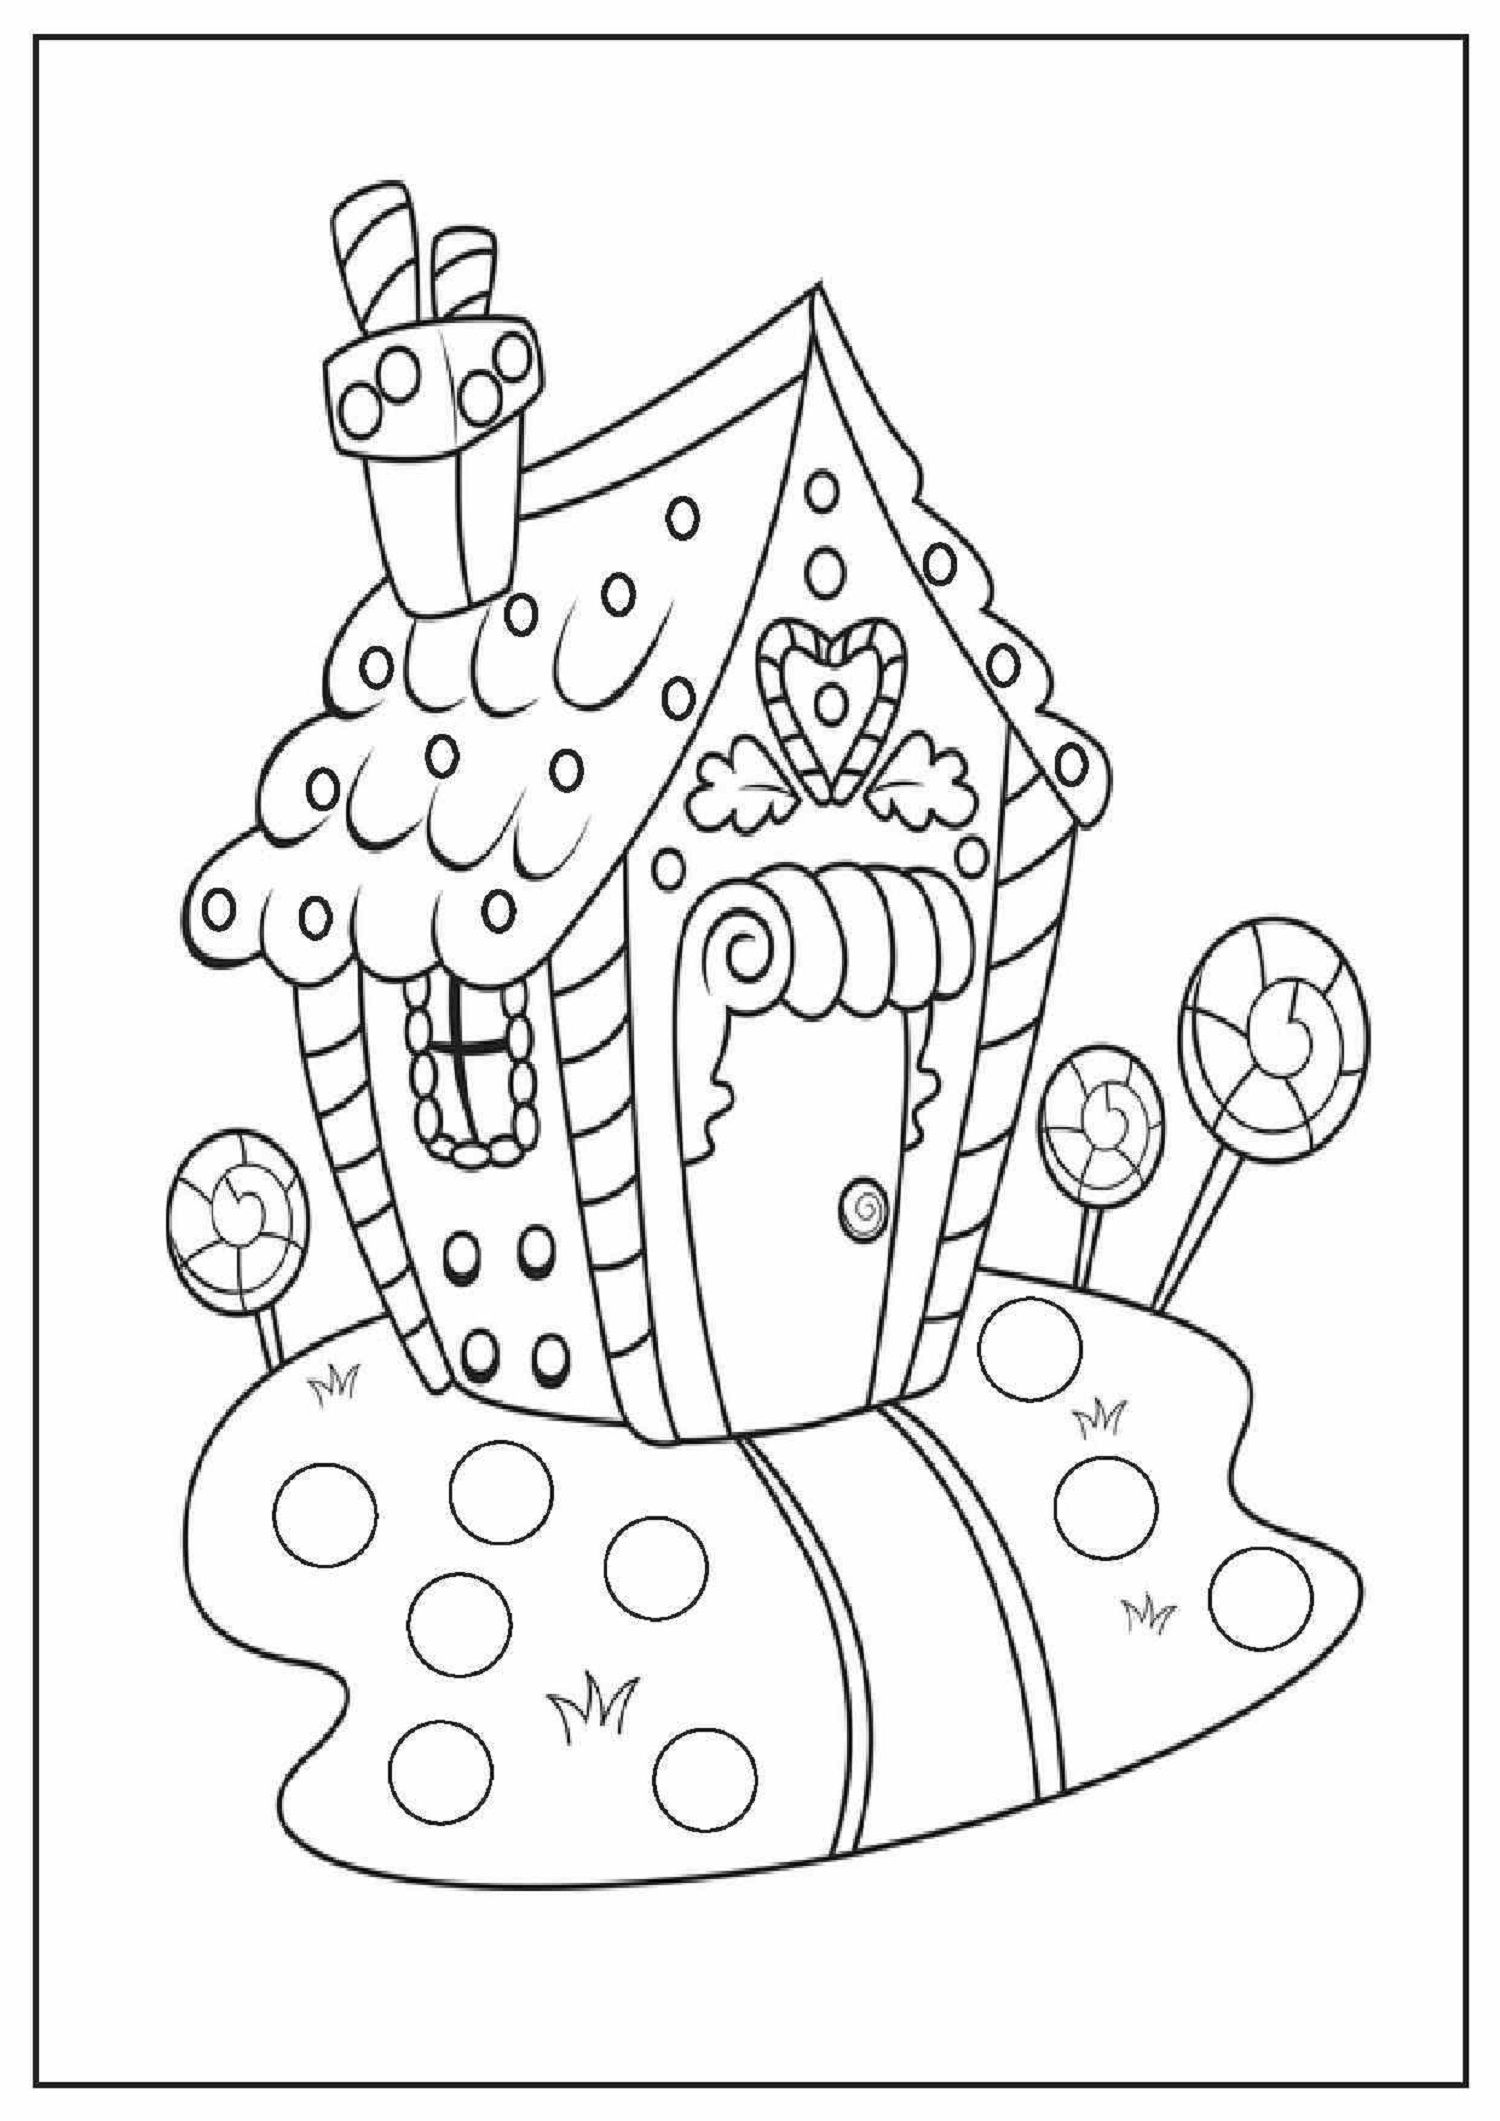 Colouring In Gingerbread House Christmas Activities For Kids Fun